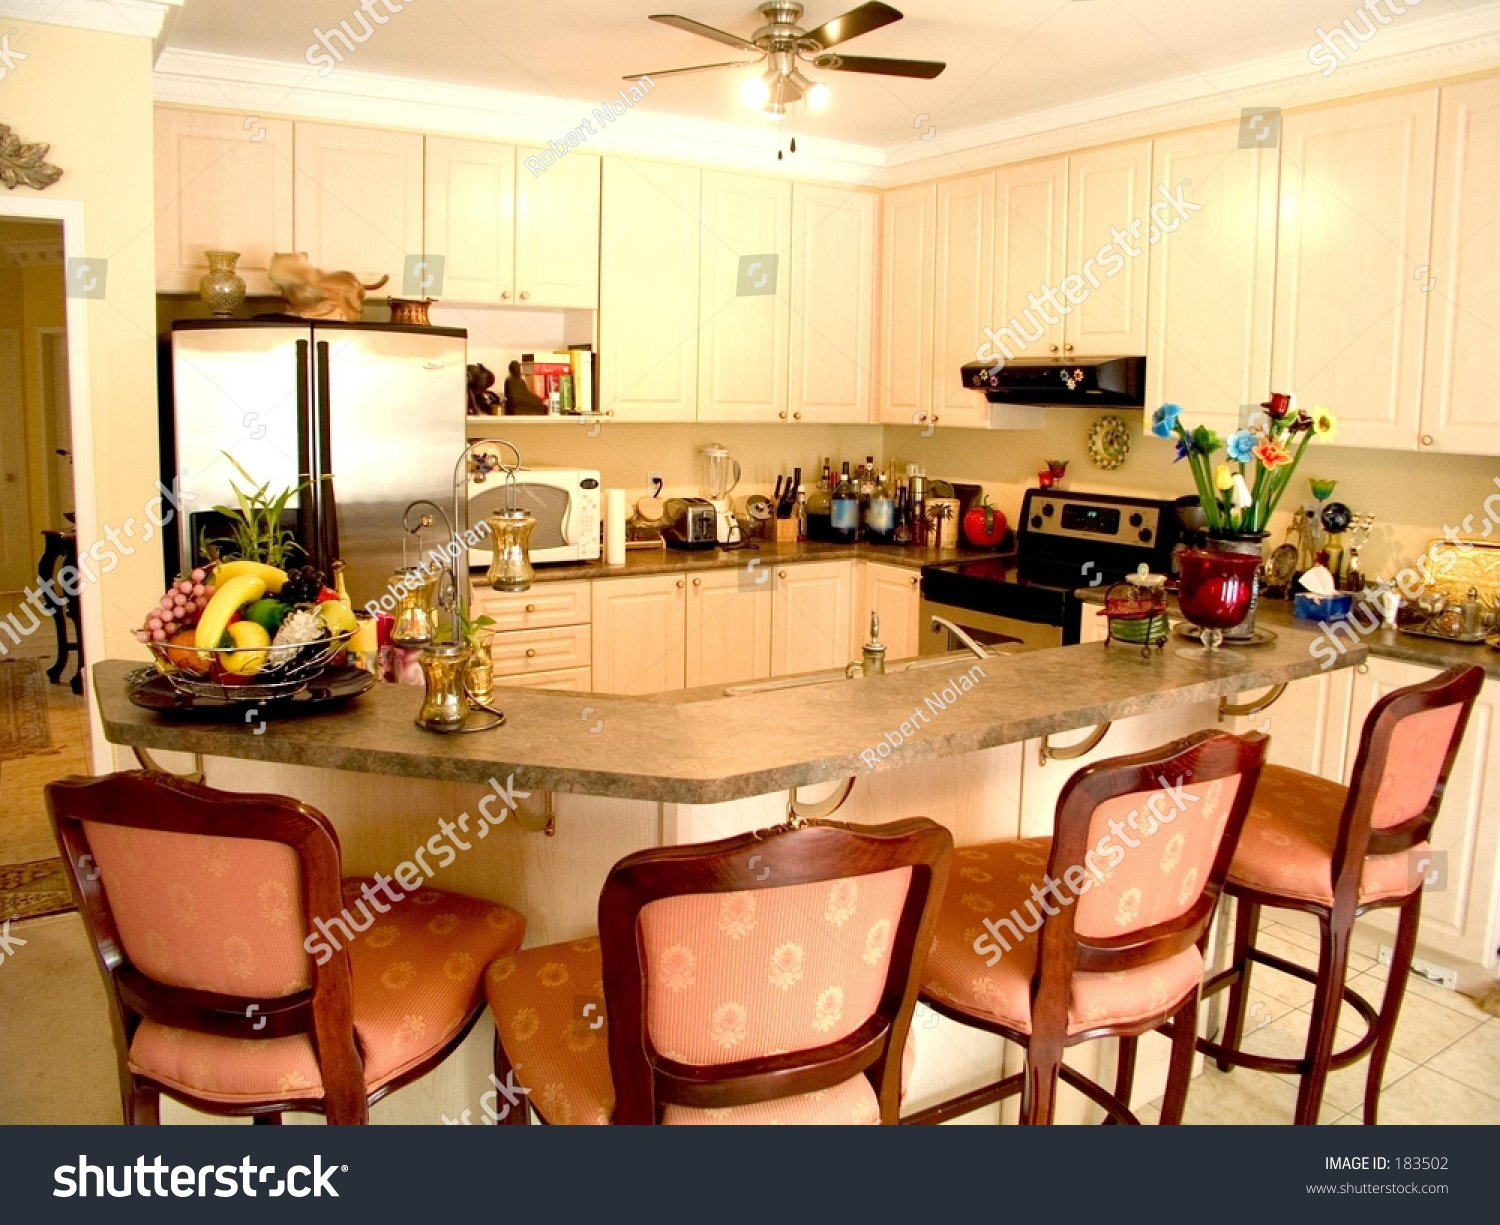 Modern Kitchen With Island Table Four Chairs Fridge Stove And Ceiling Fan Stock Photo 183502